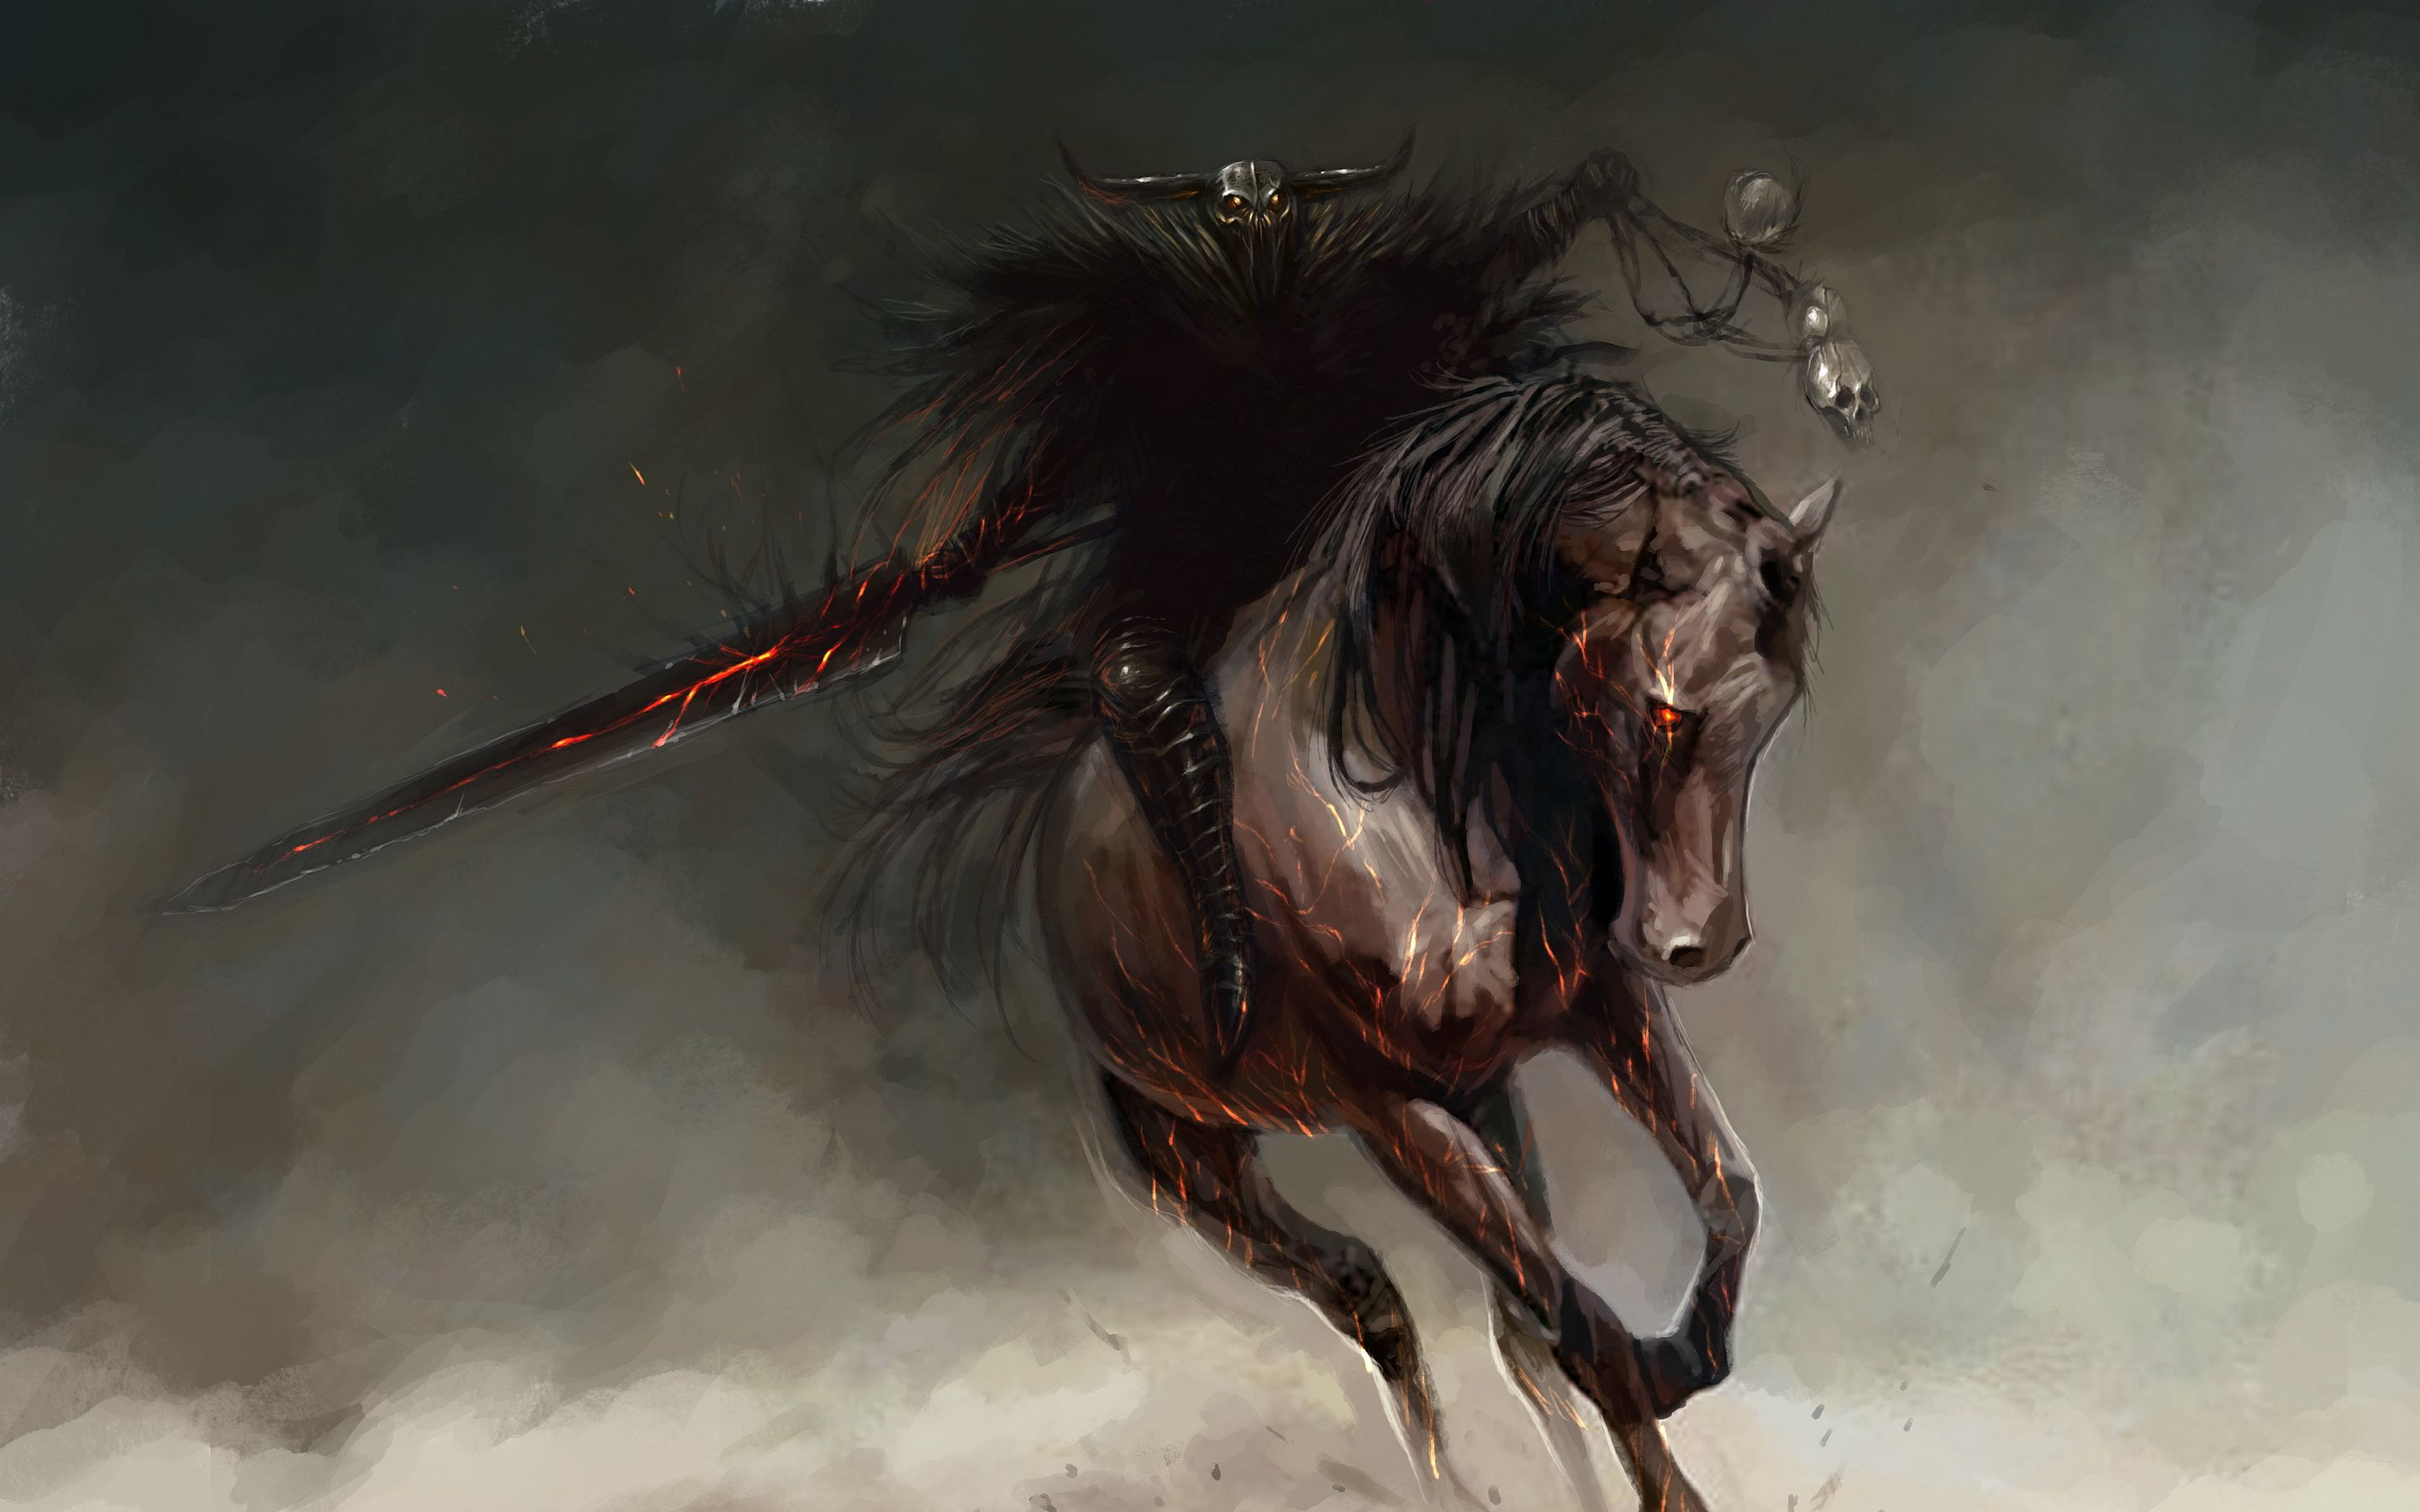 Good Wallpaper Horse Nightmare - 19c4c27a7fc3cdbc5d20c9535637e68c  Perfect Image Reference_934240.jpg